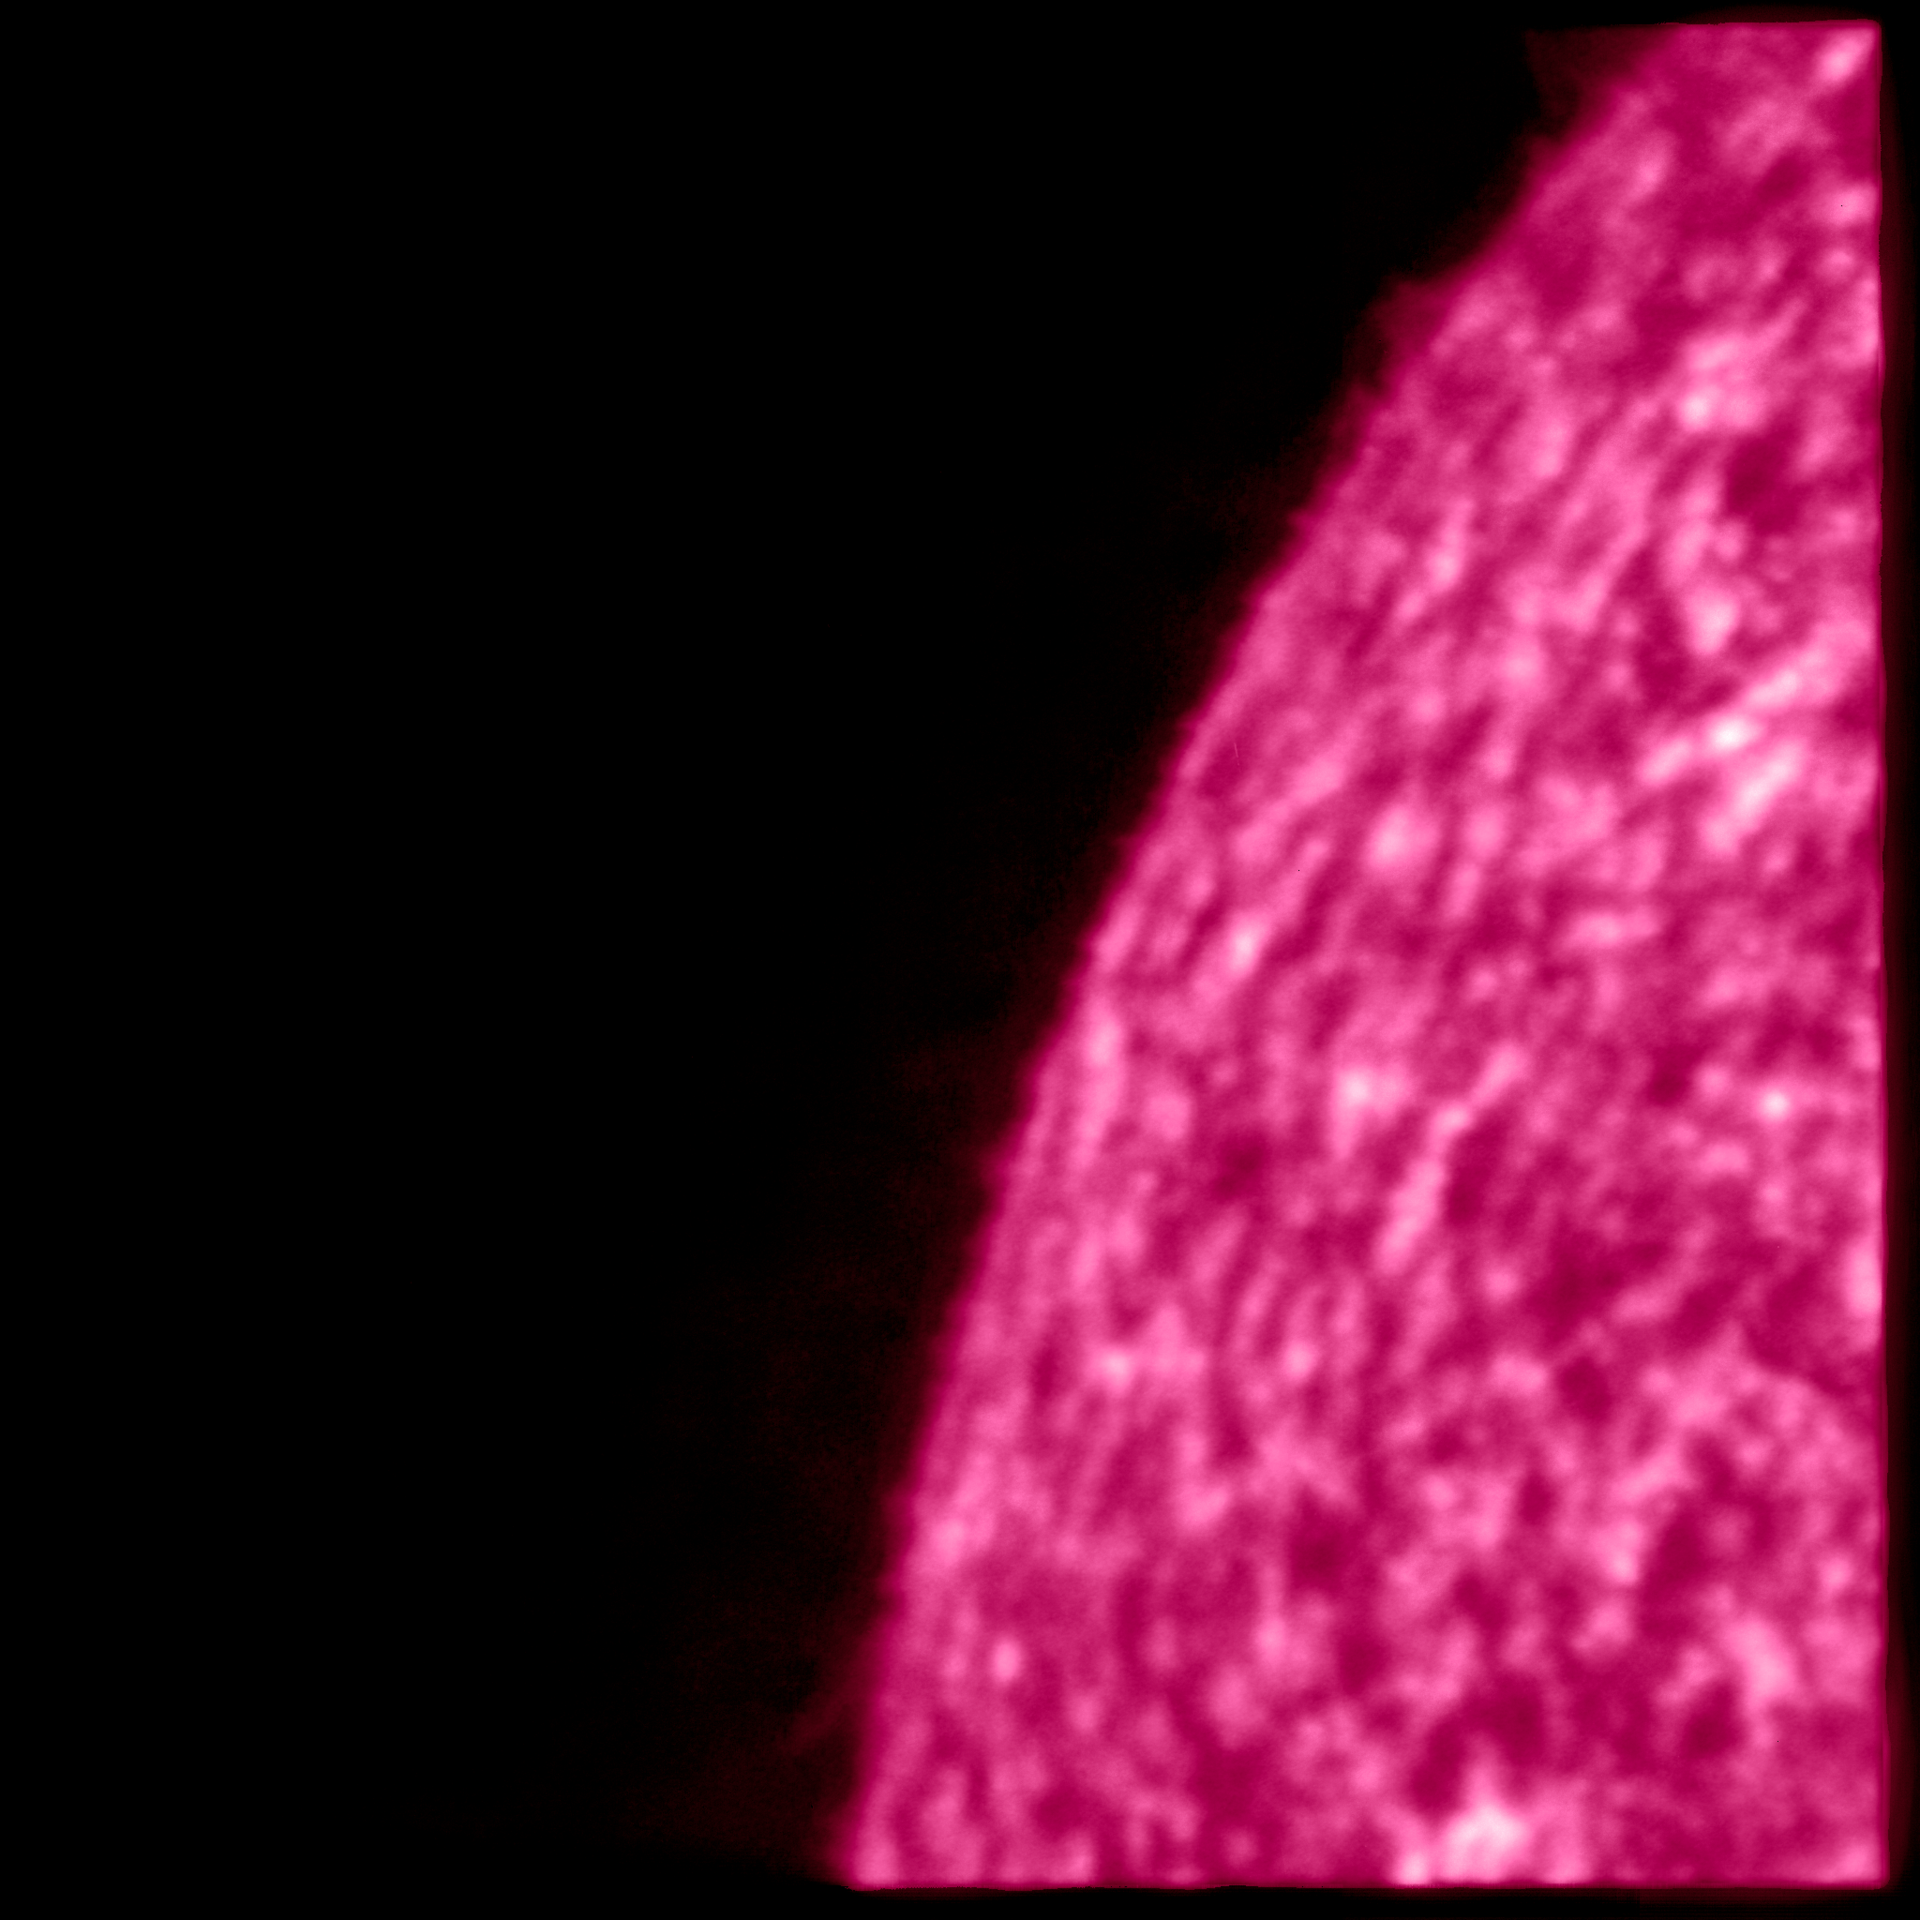 These solar images have been produced by the high resolution imager, HRILYA telescope, which is part of the Extreme Ultraviolet Imager (EUI) instrument on ESA's Solar Orbiter spacecraft. The images show the solar surface in a particular ultraviolet wavelength that is produced by hydrogen, the most abundant chemical element in the Universe. The wavelength is known as Lyman-alpha and has a wavelength of 121.6 nm. Here, it shows the solar atmosphere below the hot corona revealed by EUI's HRIEUV telescope. The 'network' structure seen in the images is characteristic of a region of the solar atmosphere known as the chromosphere. This section of the Sun's lower atmosphere has a temperature of about ten-thousand to hundred-thousand degrees Kelvin. It is an important transition region in the solar atmosphere where the electrically charged gas, known as plasma, is increasingly dominated by the magnetic field of the Sun. The pattern is produced by convective motions underneath, but individual bright features within this pattern can correspond to the footprints of magnetic structures higher up in the corona. The violet color has been artificially added to help visual identification of this region. (Solar Orbiter/EUI Team (ESA & NASA); CSL, IAS, MPS, PMOD/WRC, ROB, UCL/MSSL)